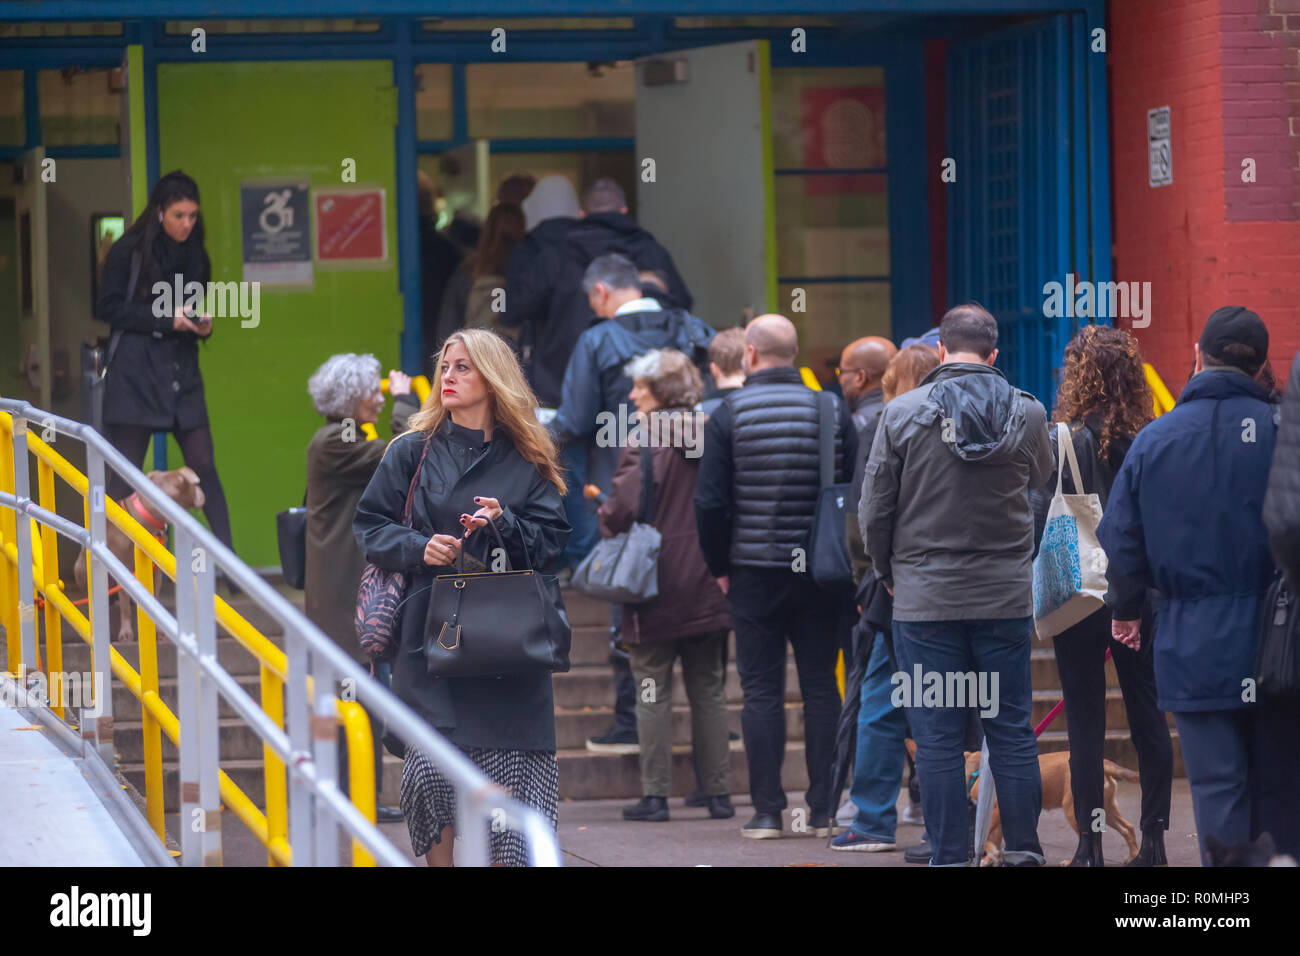 New York, USA. 6th November, 2018. Voters enter and leave the PS33 polling station in the Chelsea neighborhood of New York on Election Day, Tuesday, November 6, 2018. Credit: Richard Levine/Alamy Live News - Stock Image